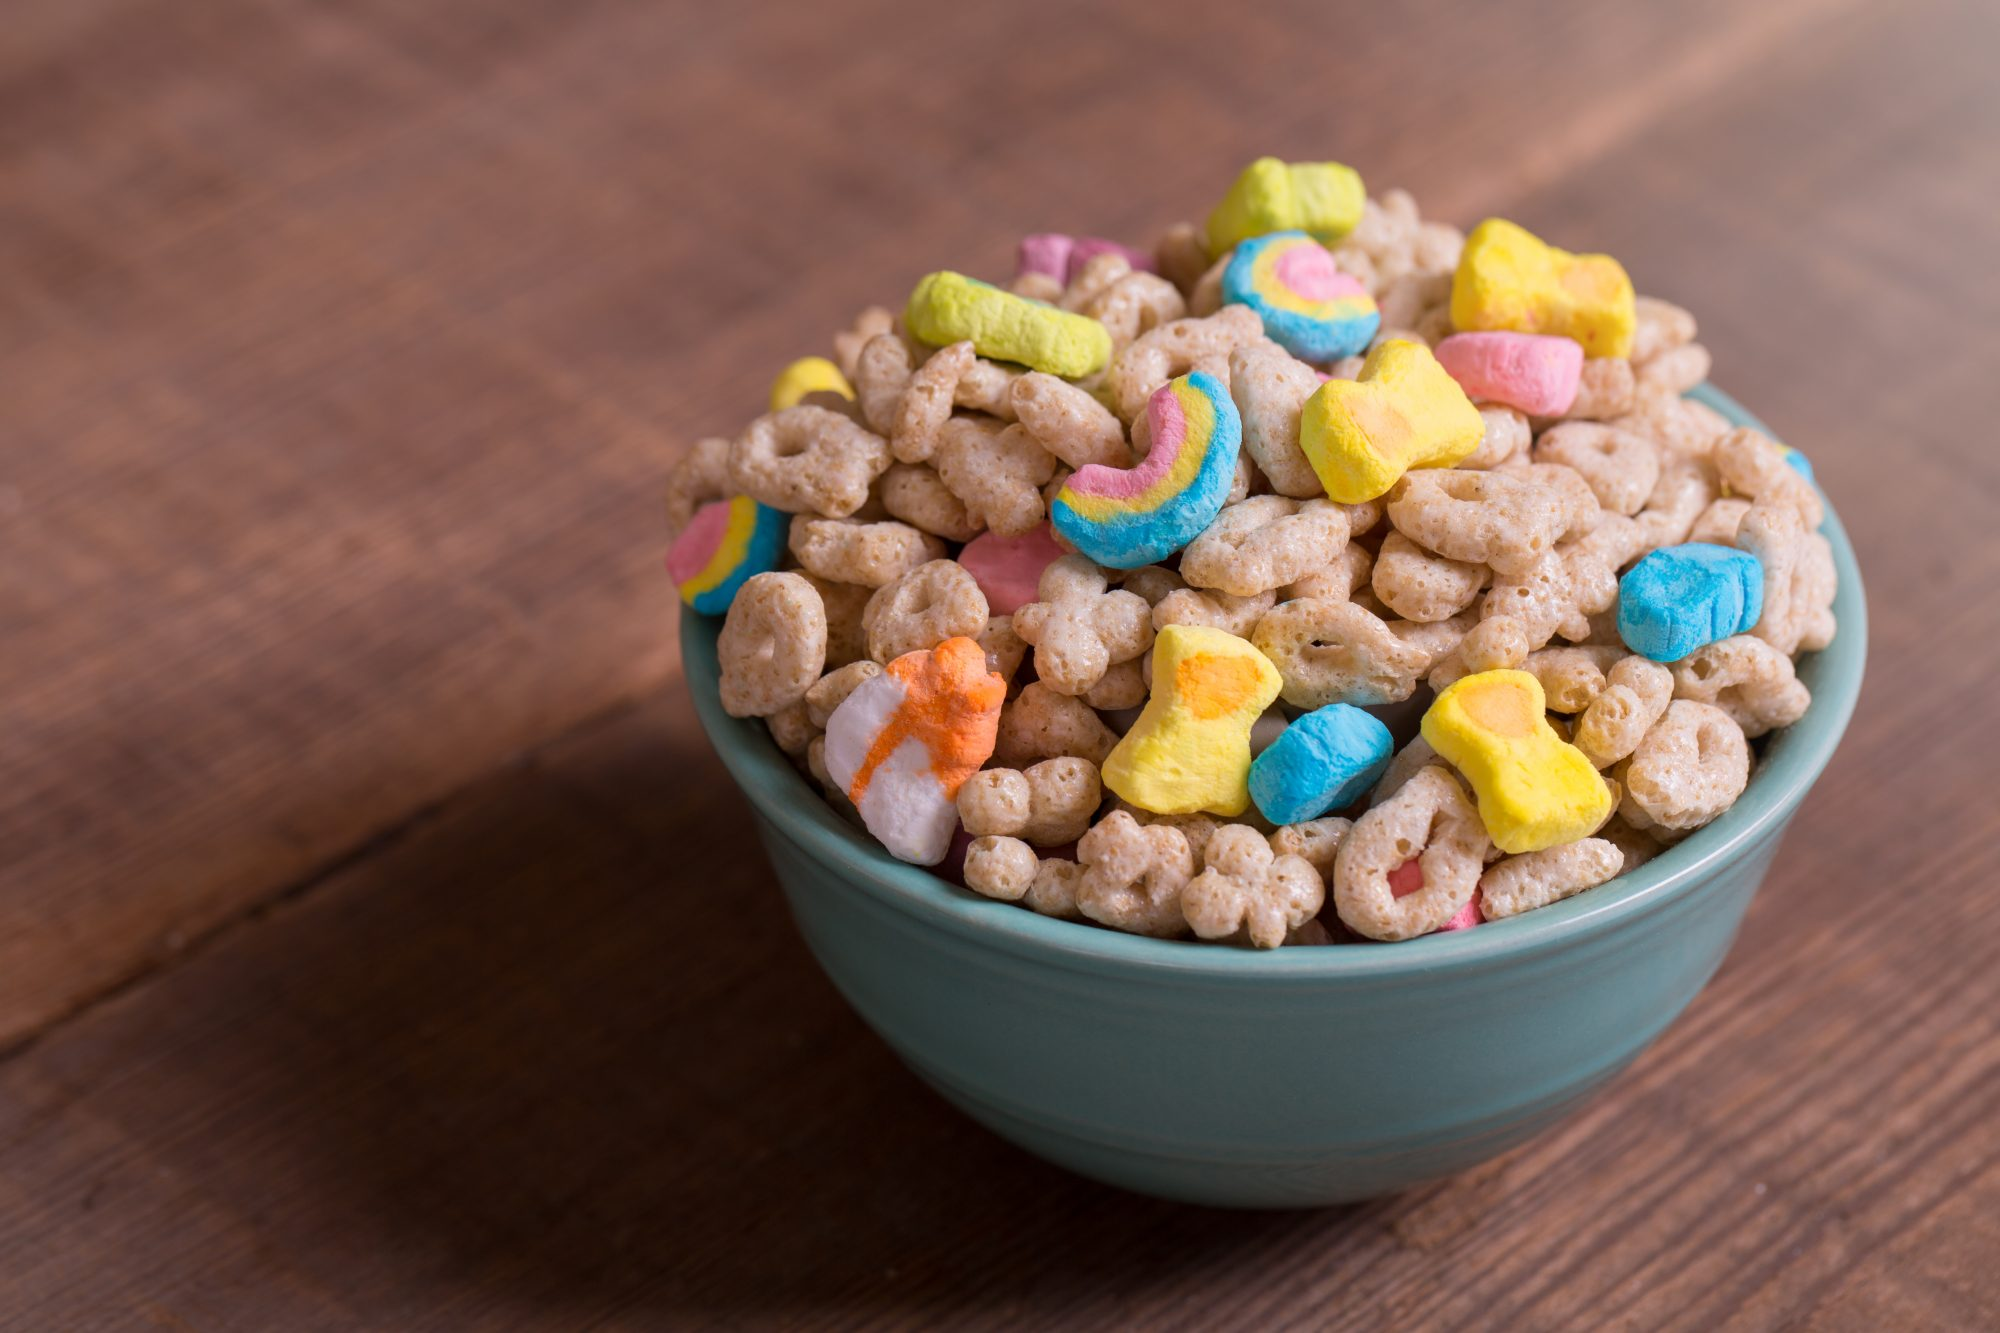 Wait, Are the Marshmallows in Lucky Charms Even Real Marshmallows?